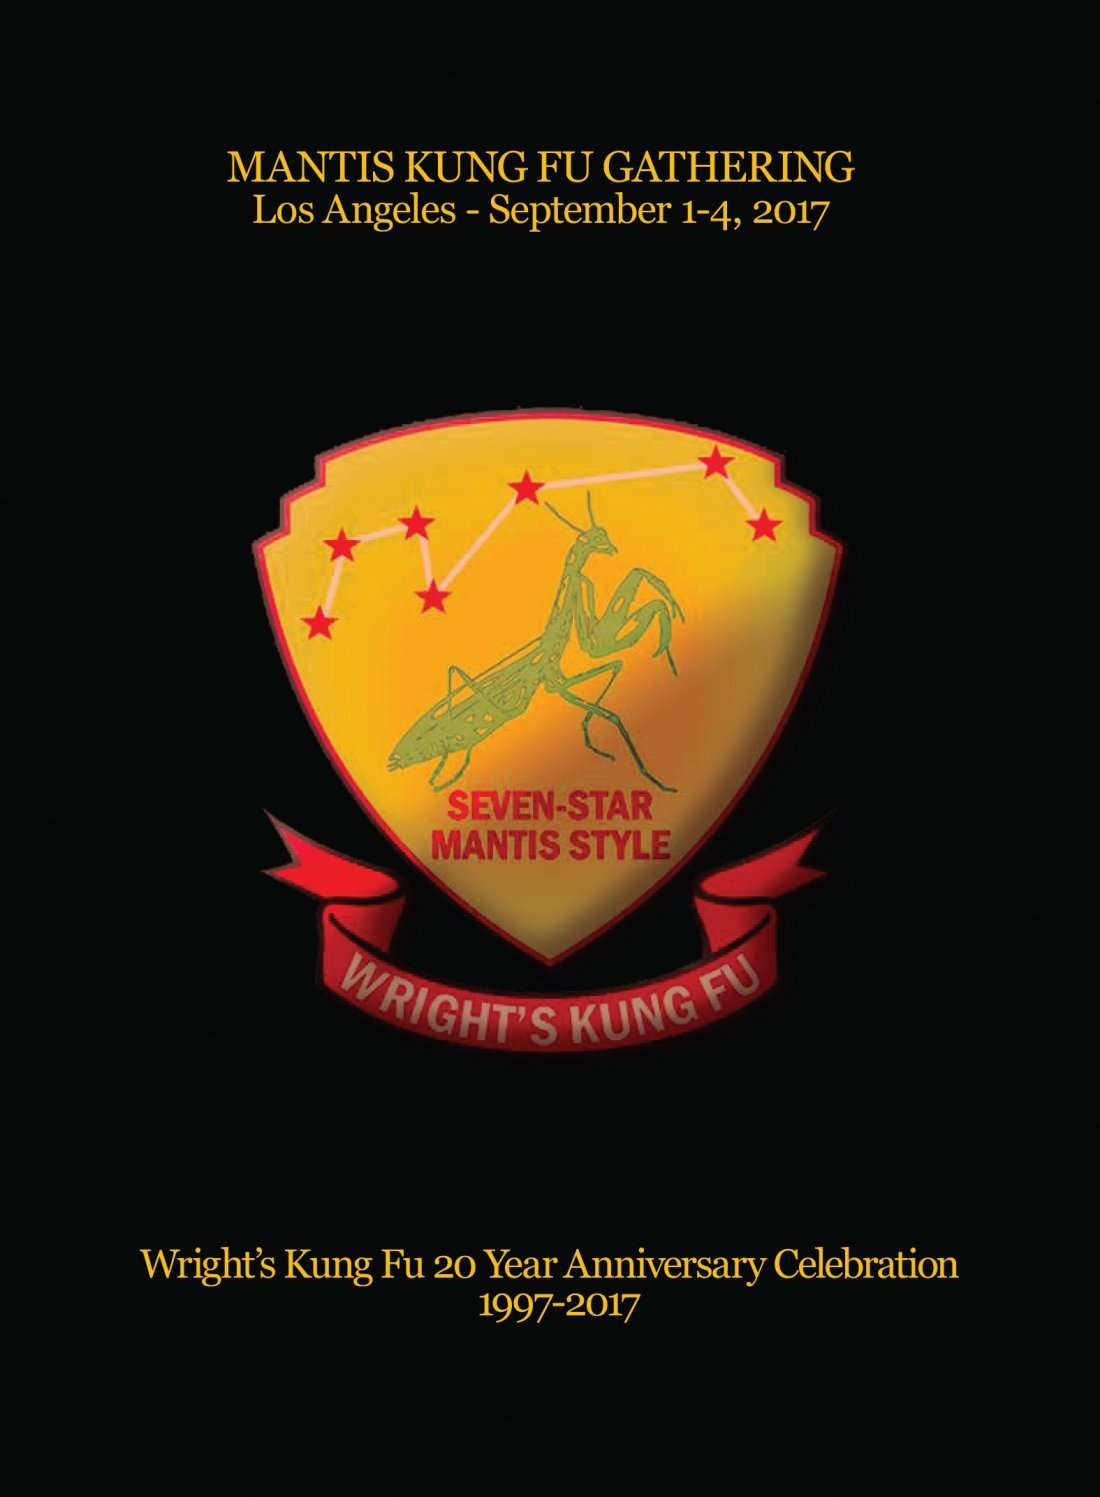 Mantis Kung Fu Gathering Los Angeles 2017